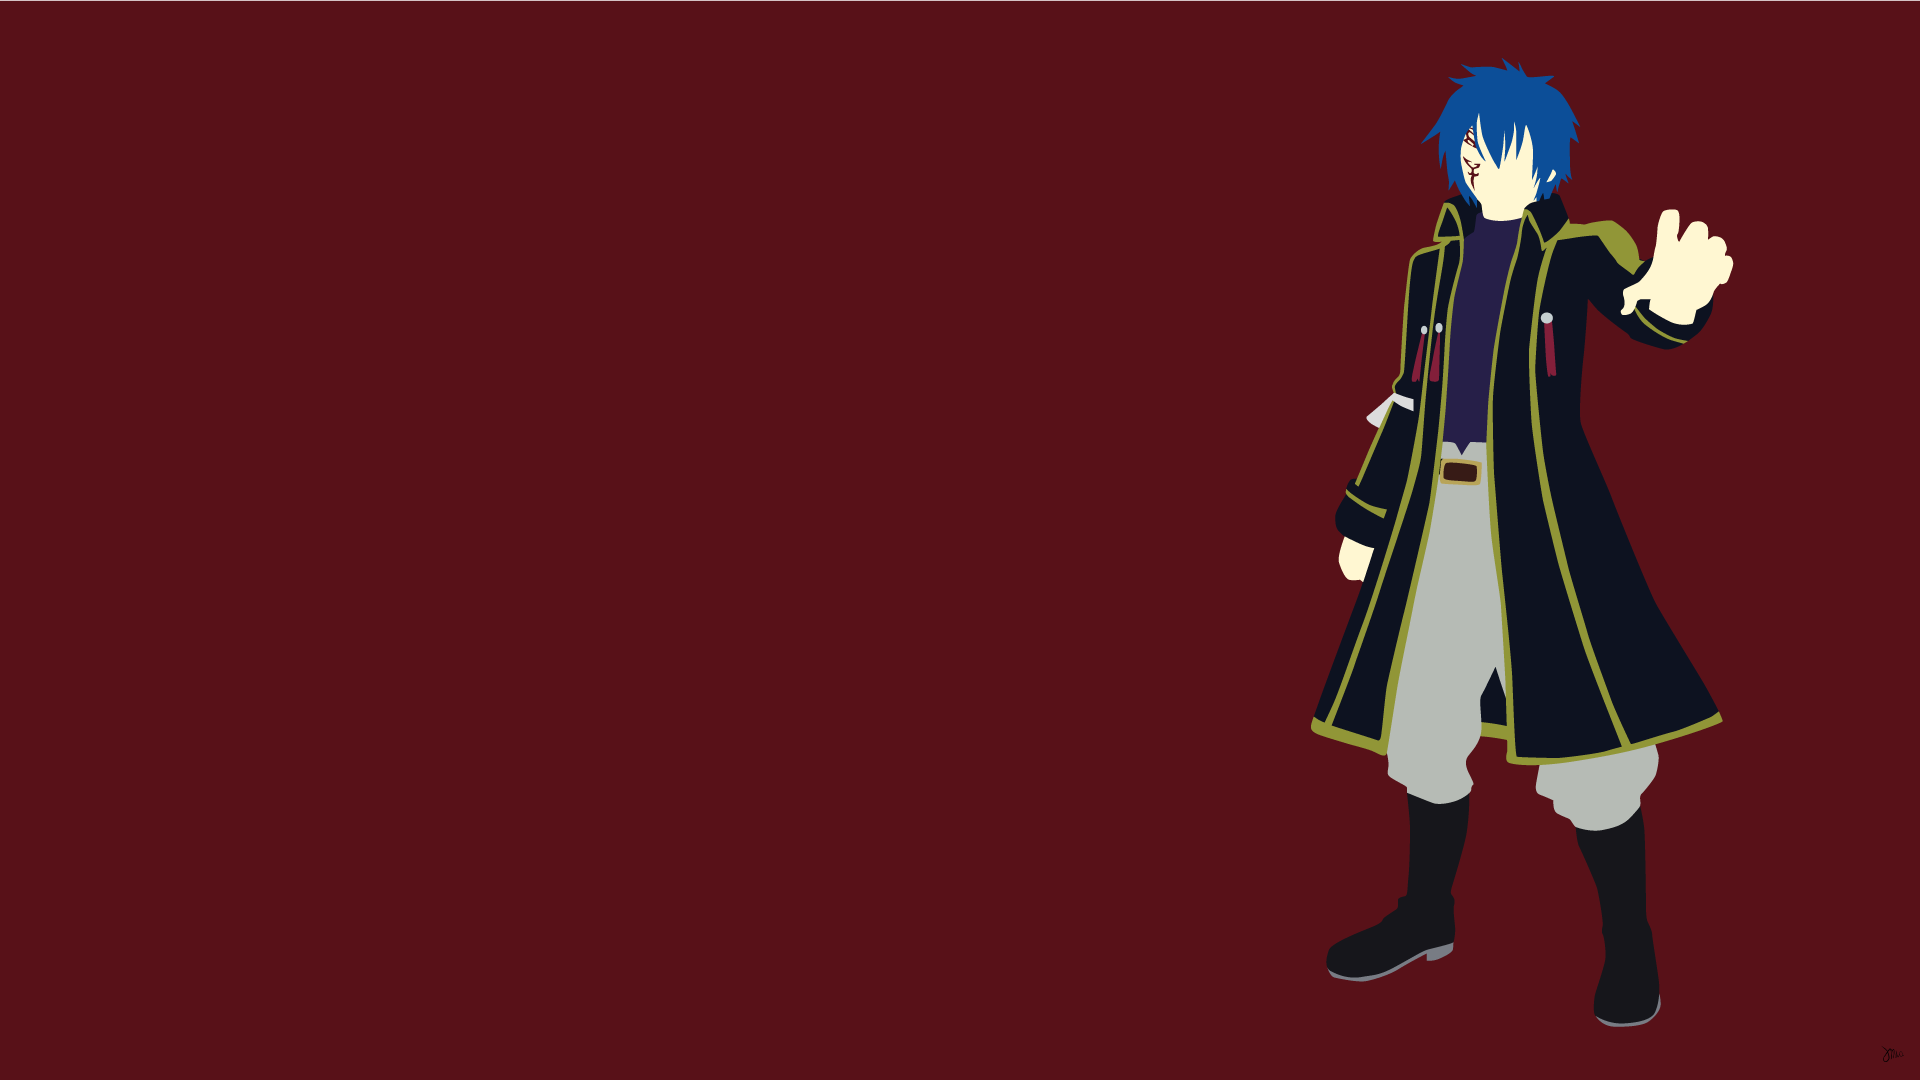 fairy tail minimalist wallpaper - photo #6